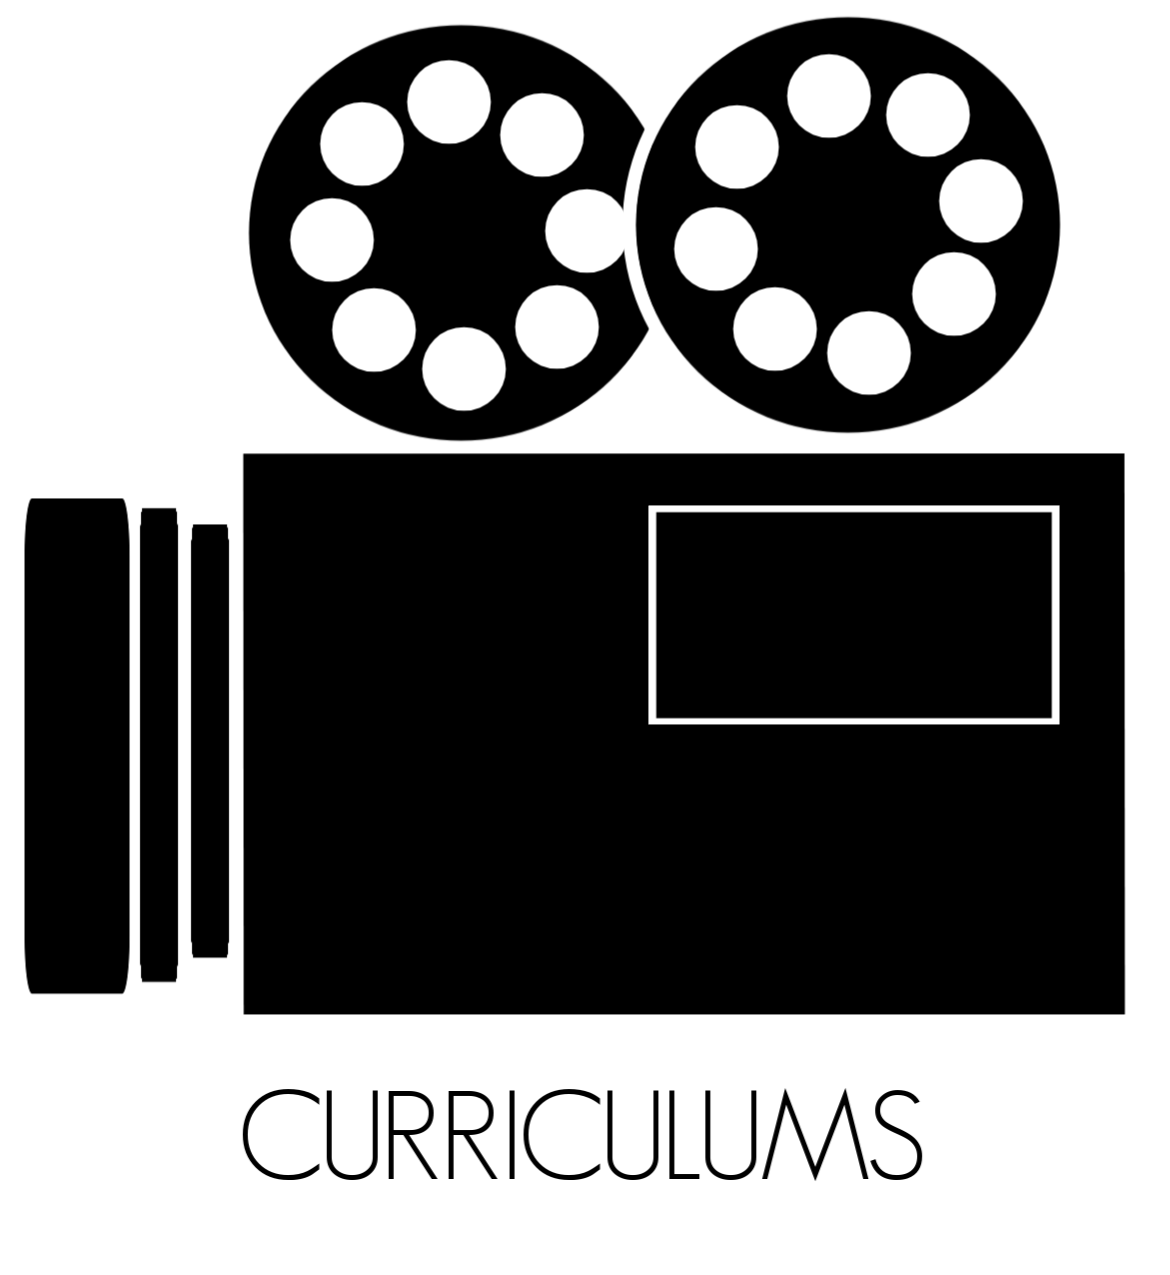 curriculums video tutorials icon SU.png